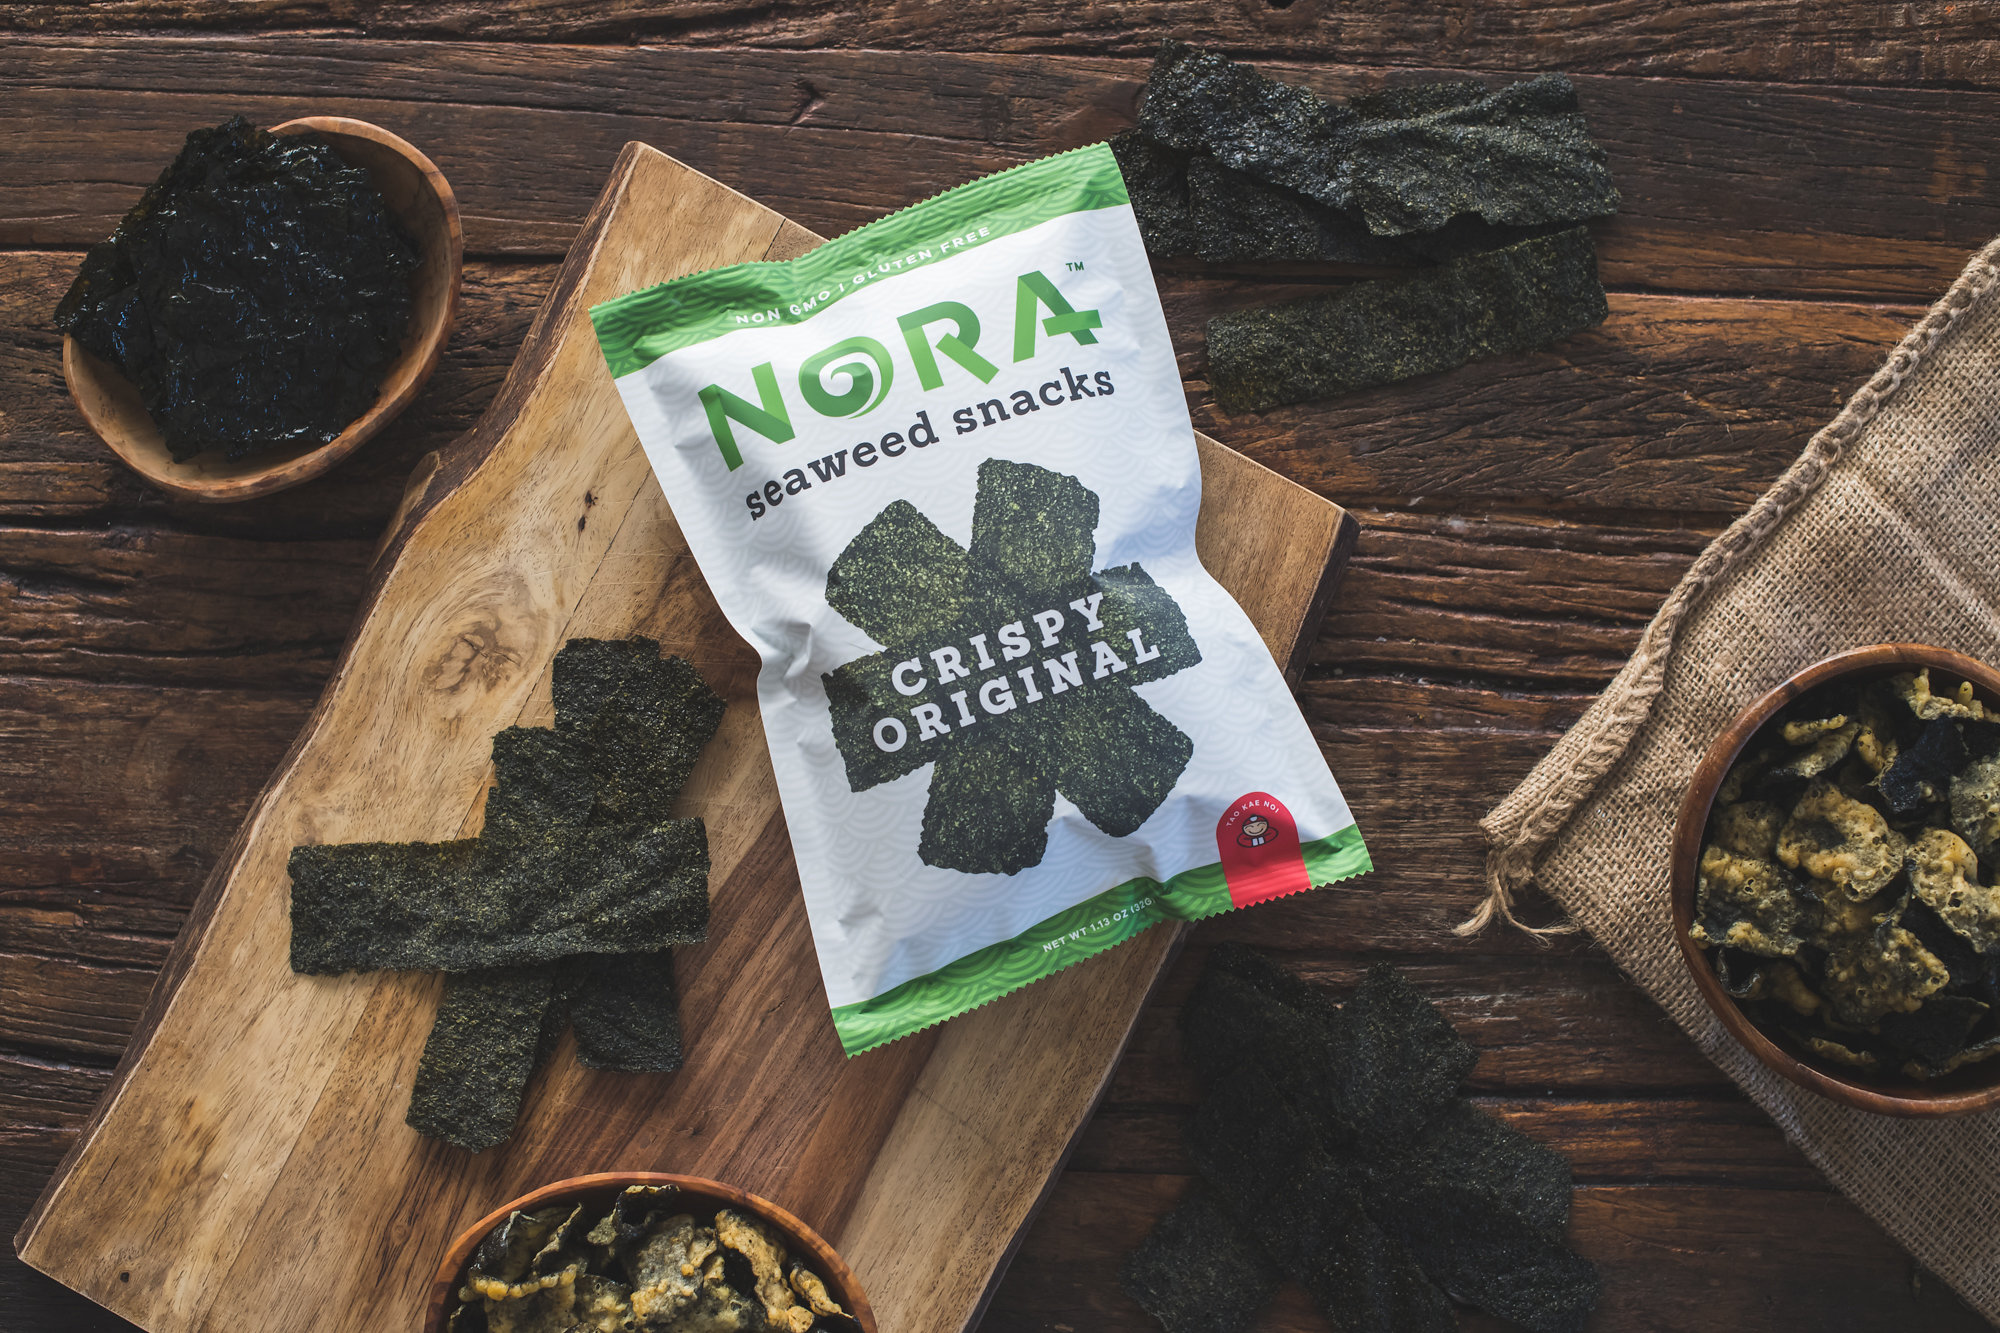 Crispy Original - Delicate but satisfying, Nora Crispy Seaweed will send your tongue spinning.